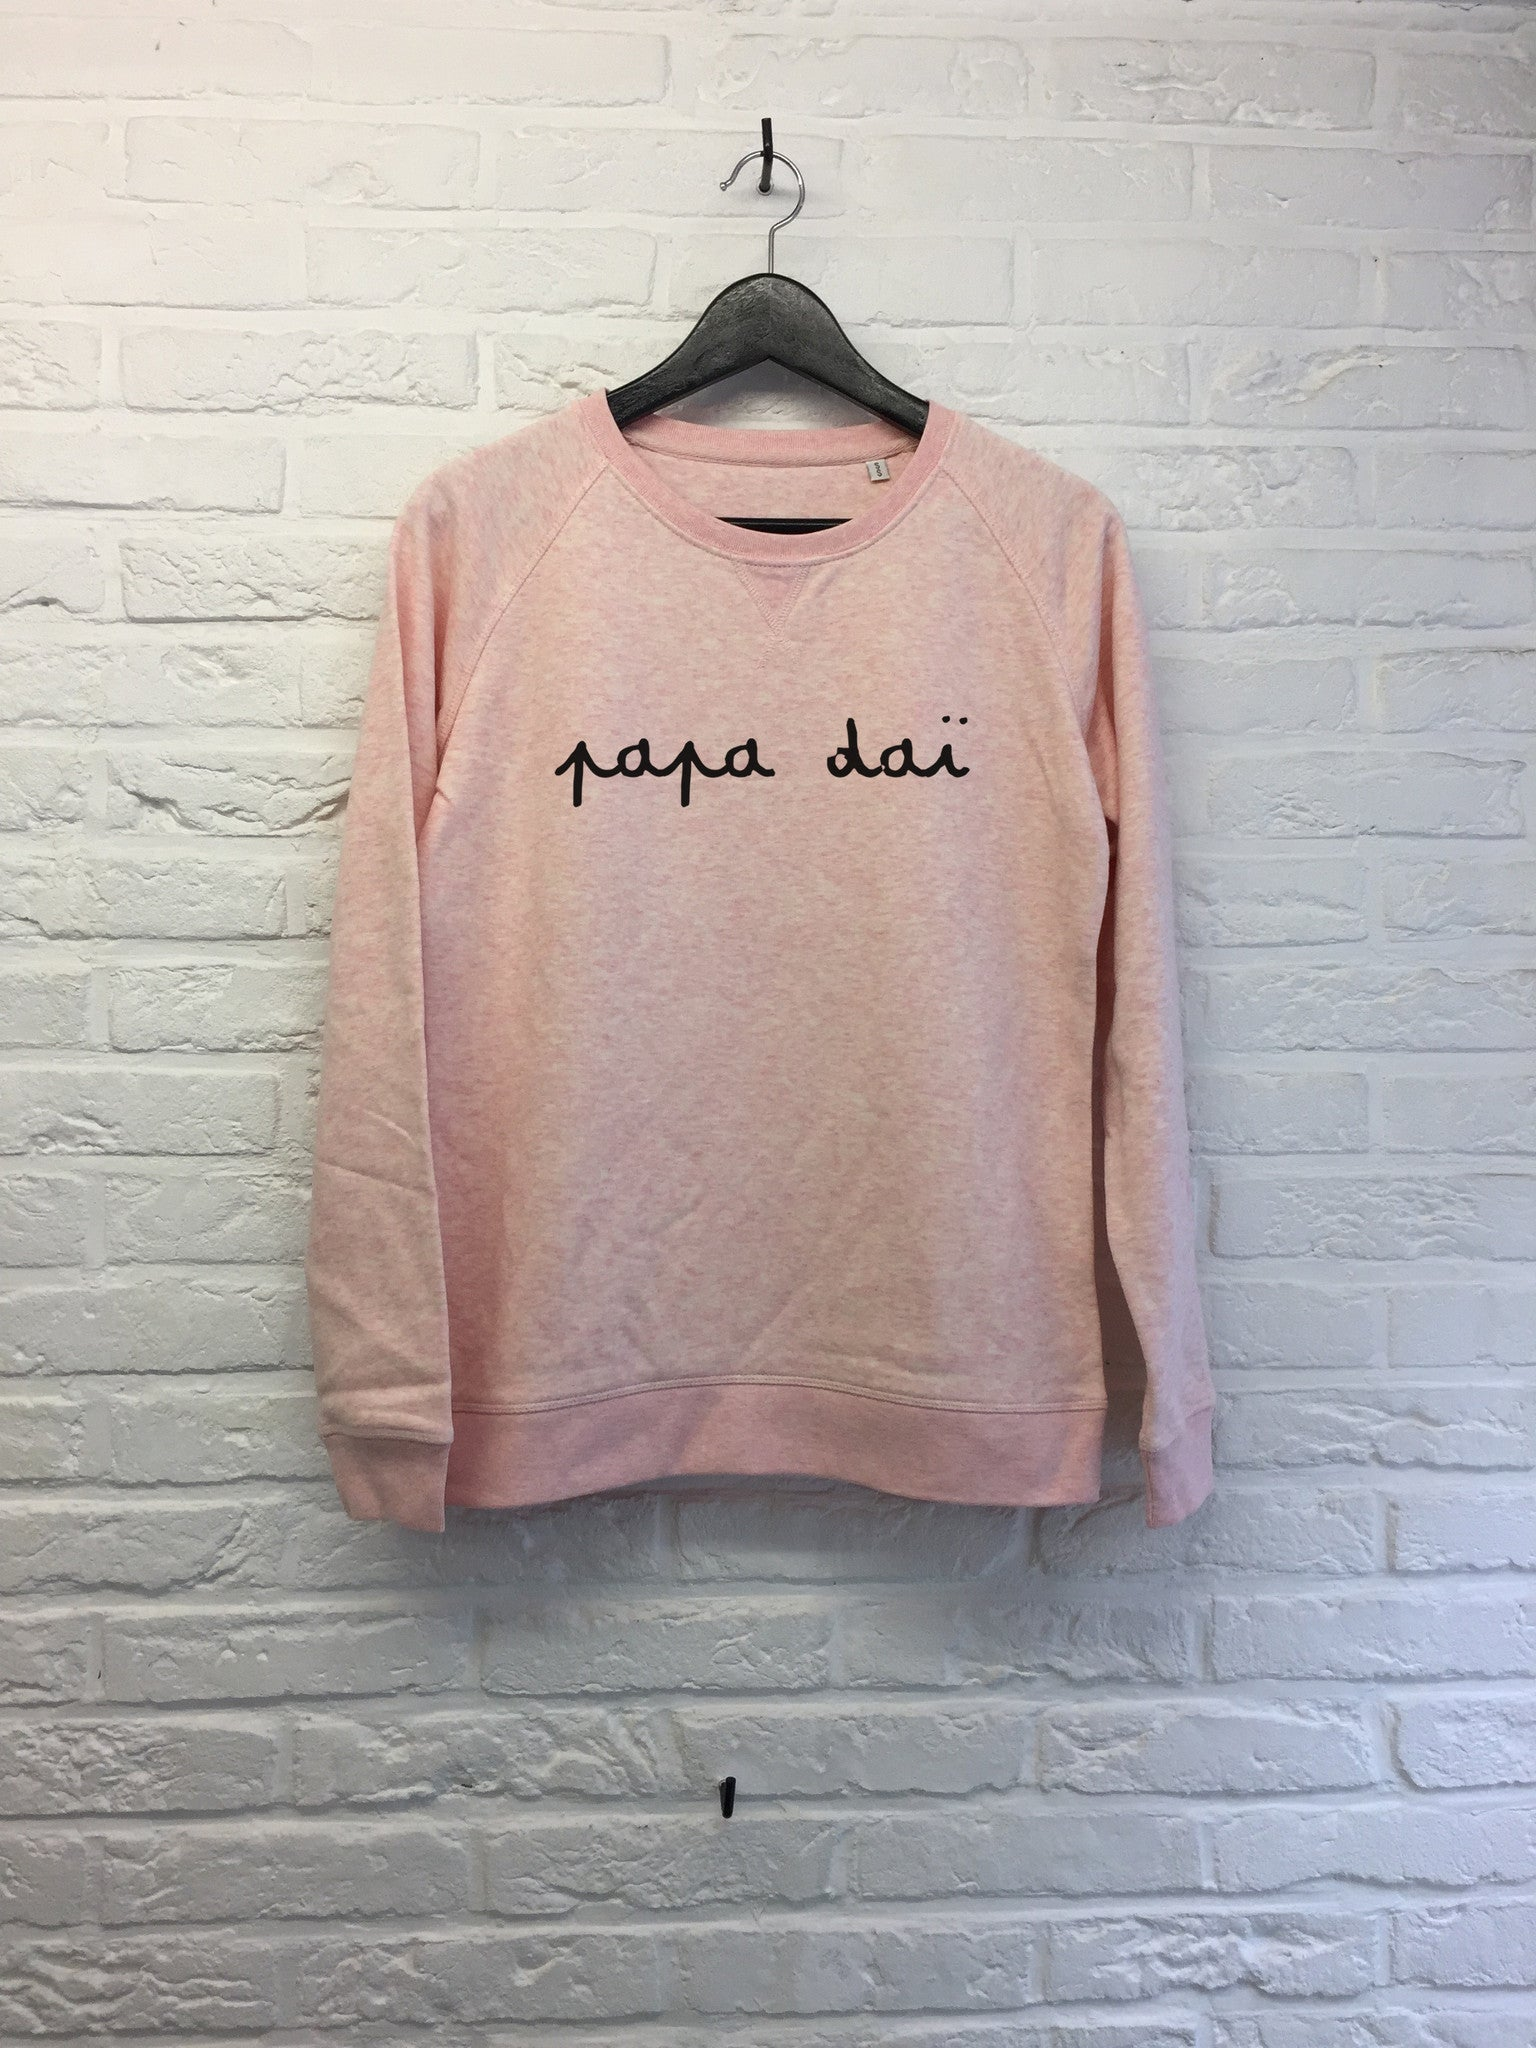 Papa Daï - Sweat - Femme-Sweat shirts-Atelier Amelot